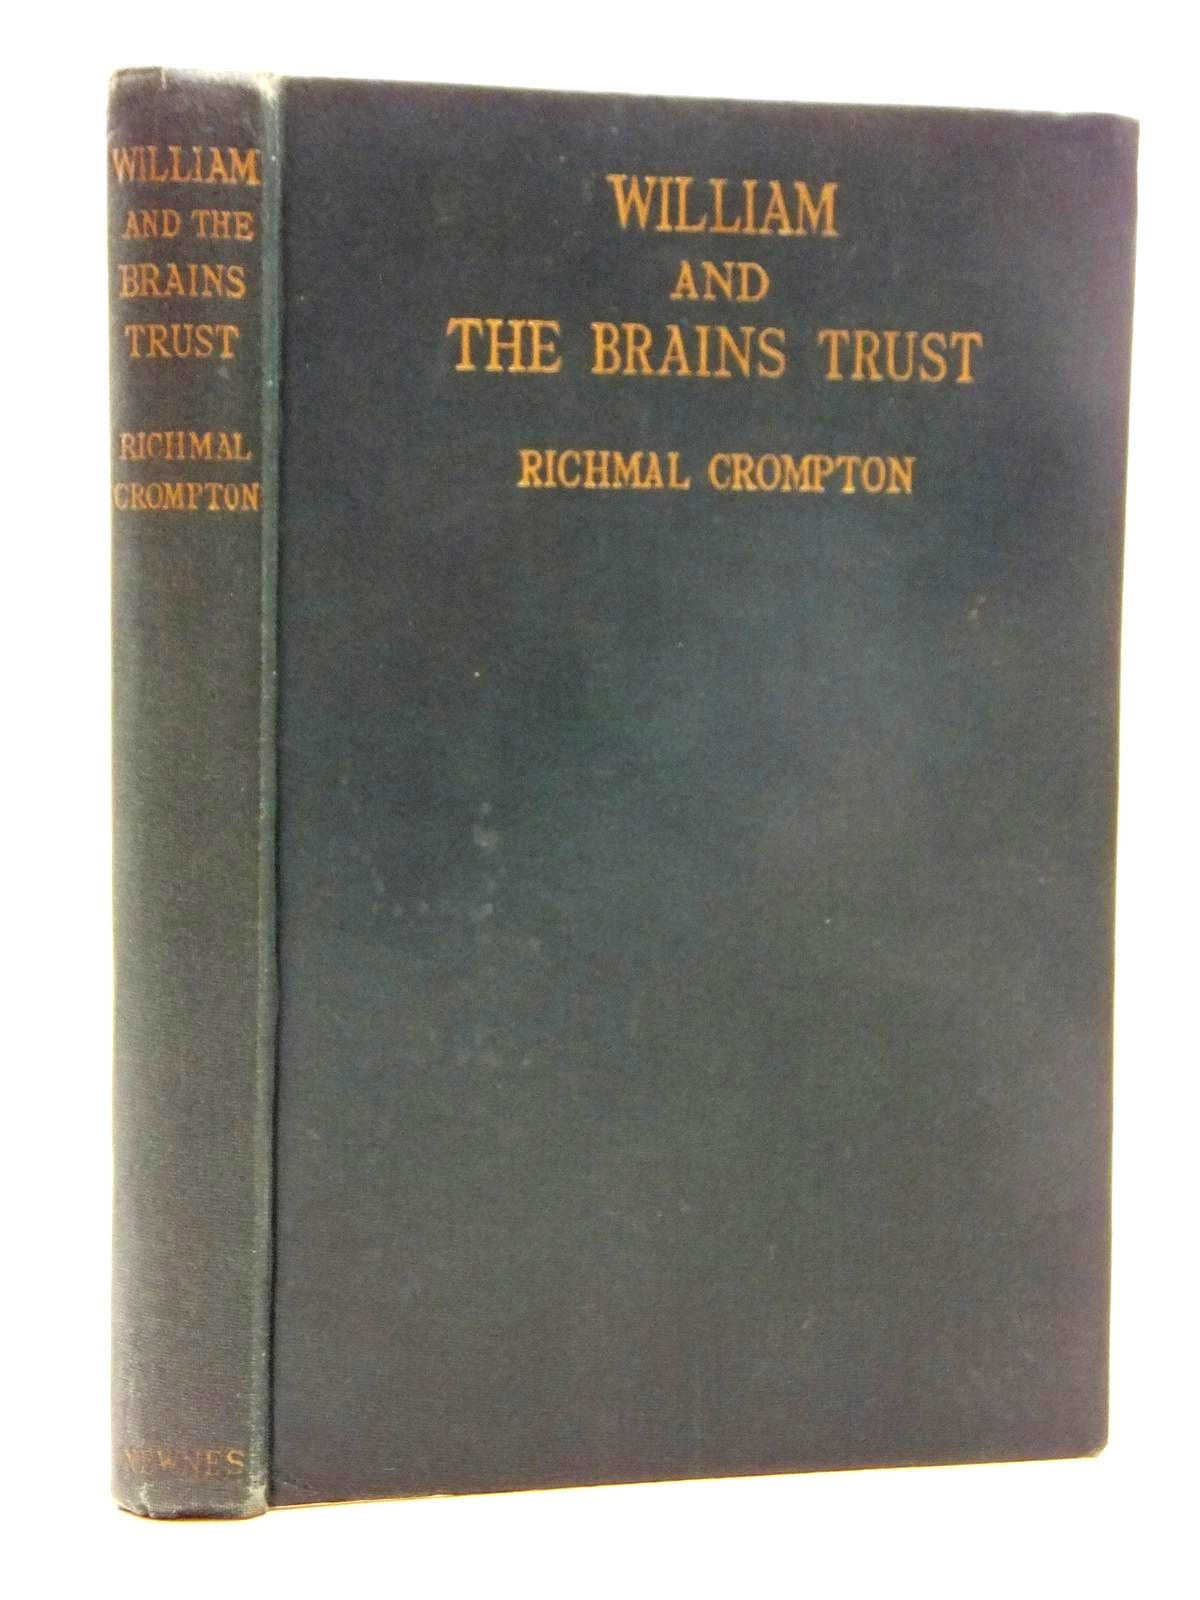 Photo of WILLIAM AND THE BRAINS TRUST written by Crompton, Richmal illustrated by Henry, Thomas published by George Newnes Ltd. (STOCK CODE: 1317055)  for sale by Stella & Rose's Books